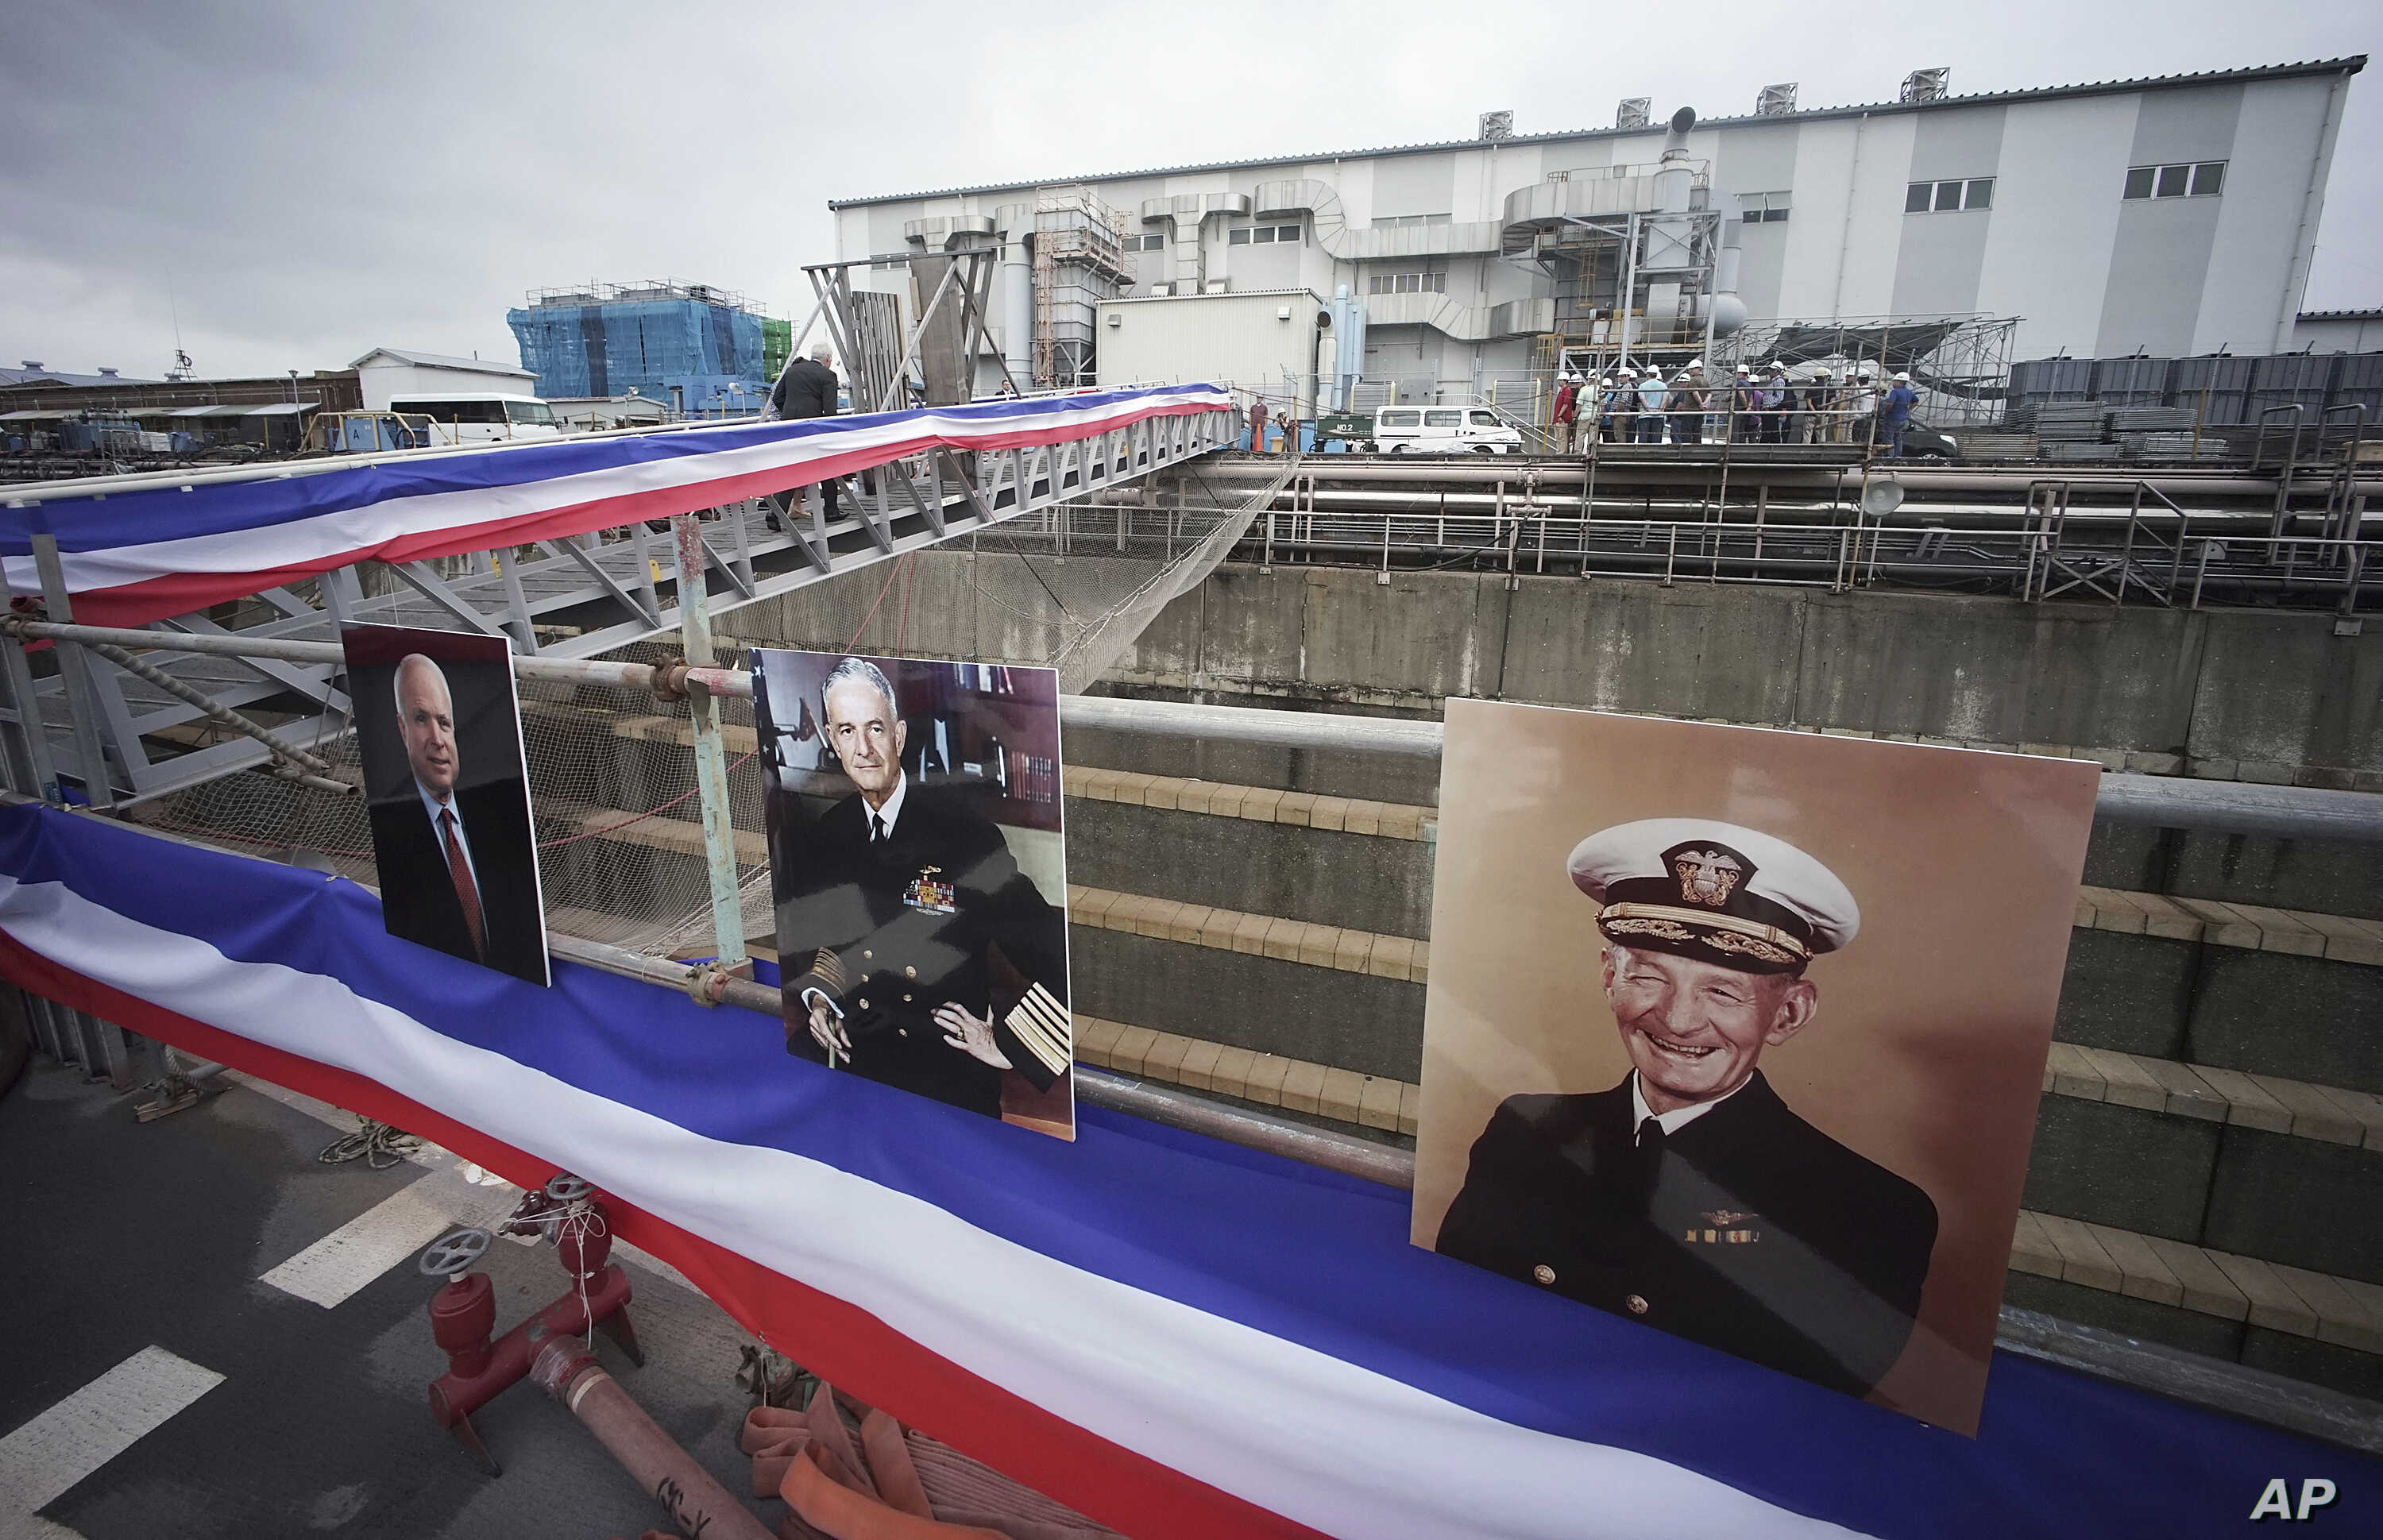 Near the portraits, from right, of  John S. McCain, John S. McCain, Jr. and John S. McCain III, Navy Secretary Richard Spencer and his wife Polly Spencer disembark from the USS John S. McCain after a rededication ceremony at the U.S. Naval base in Yo...